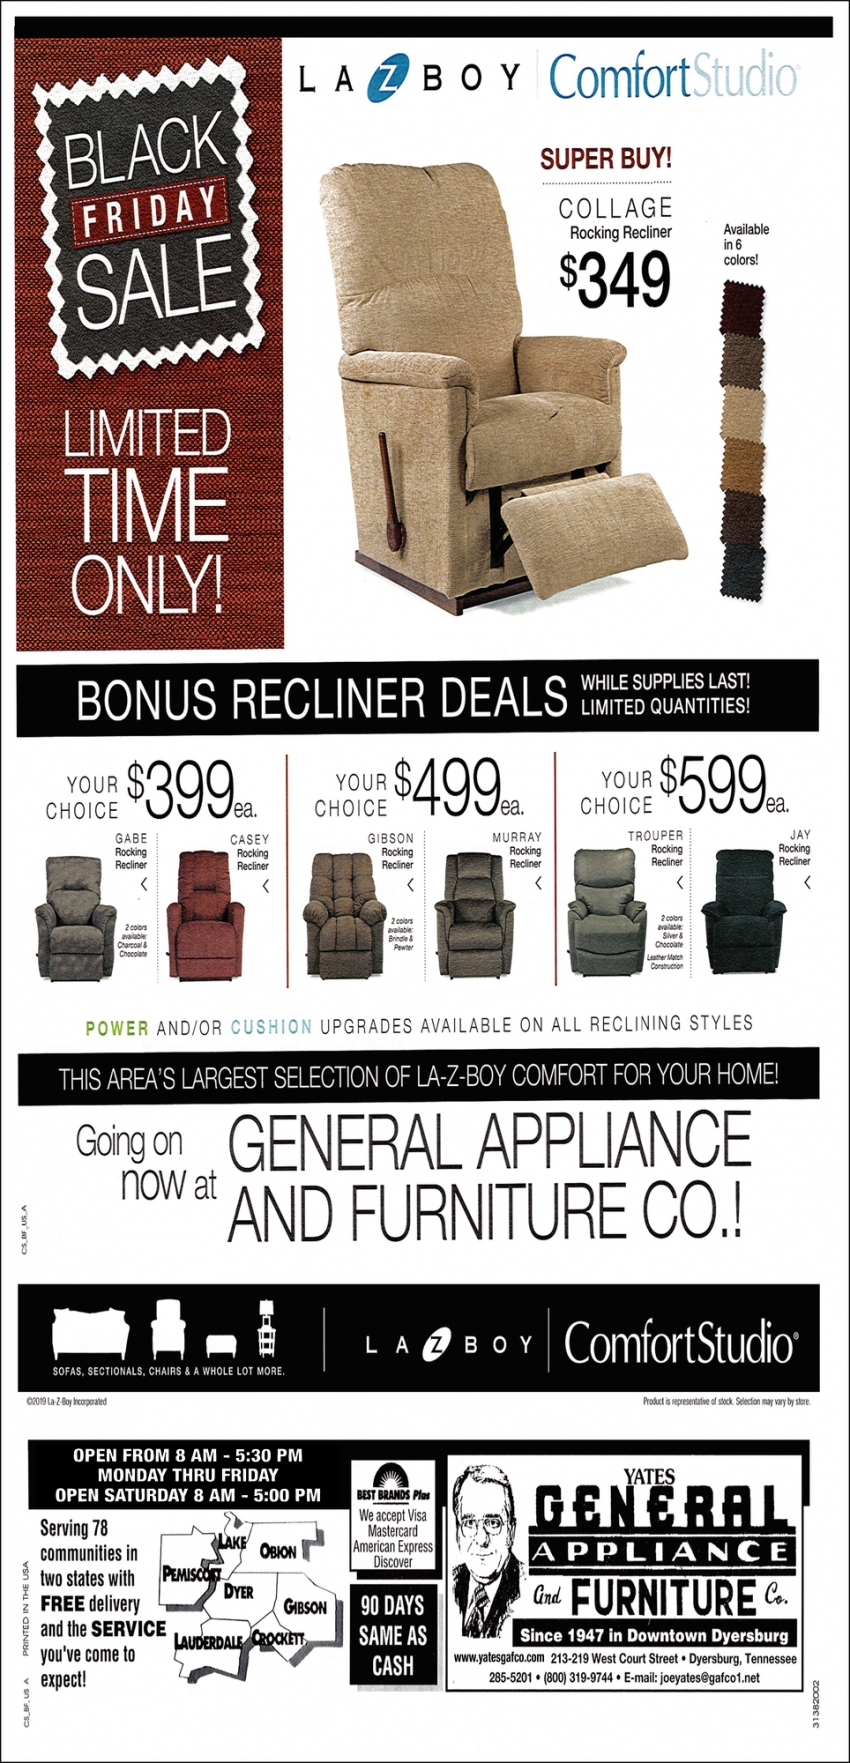 Appliance & Furniture Company